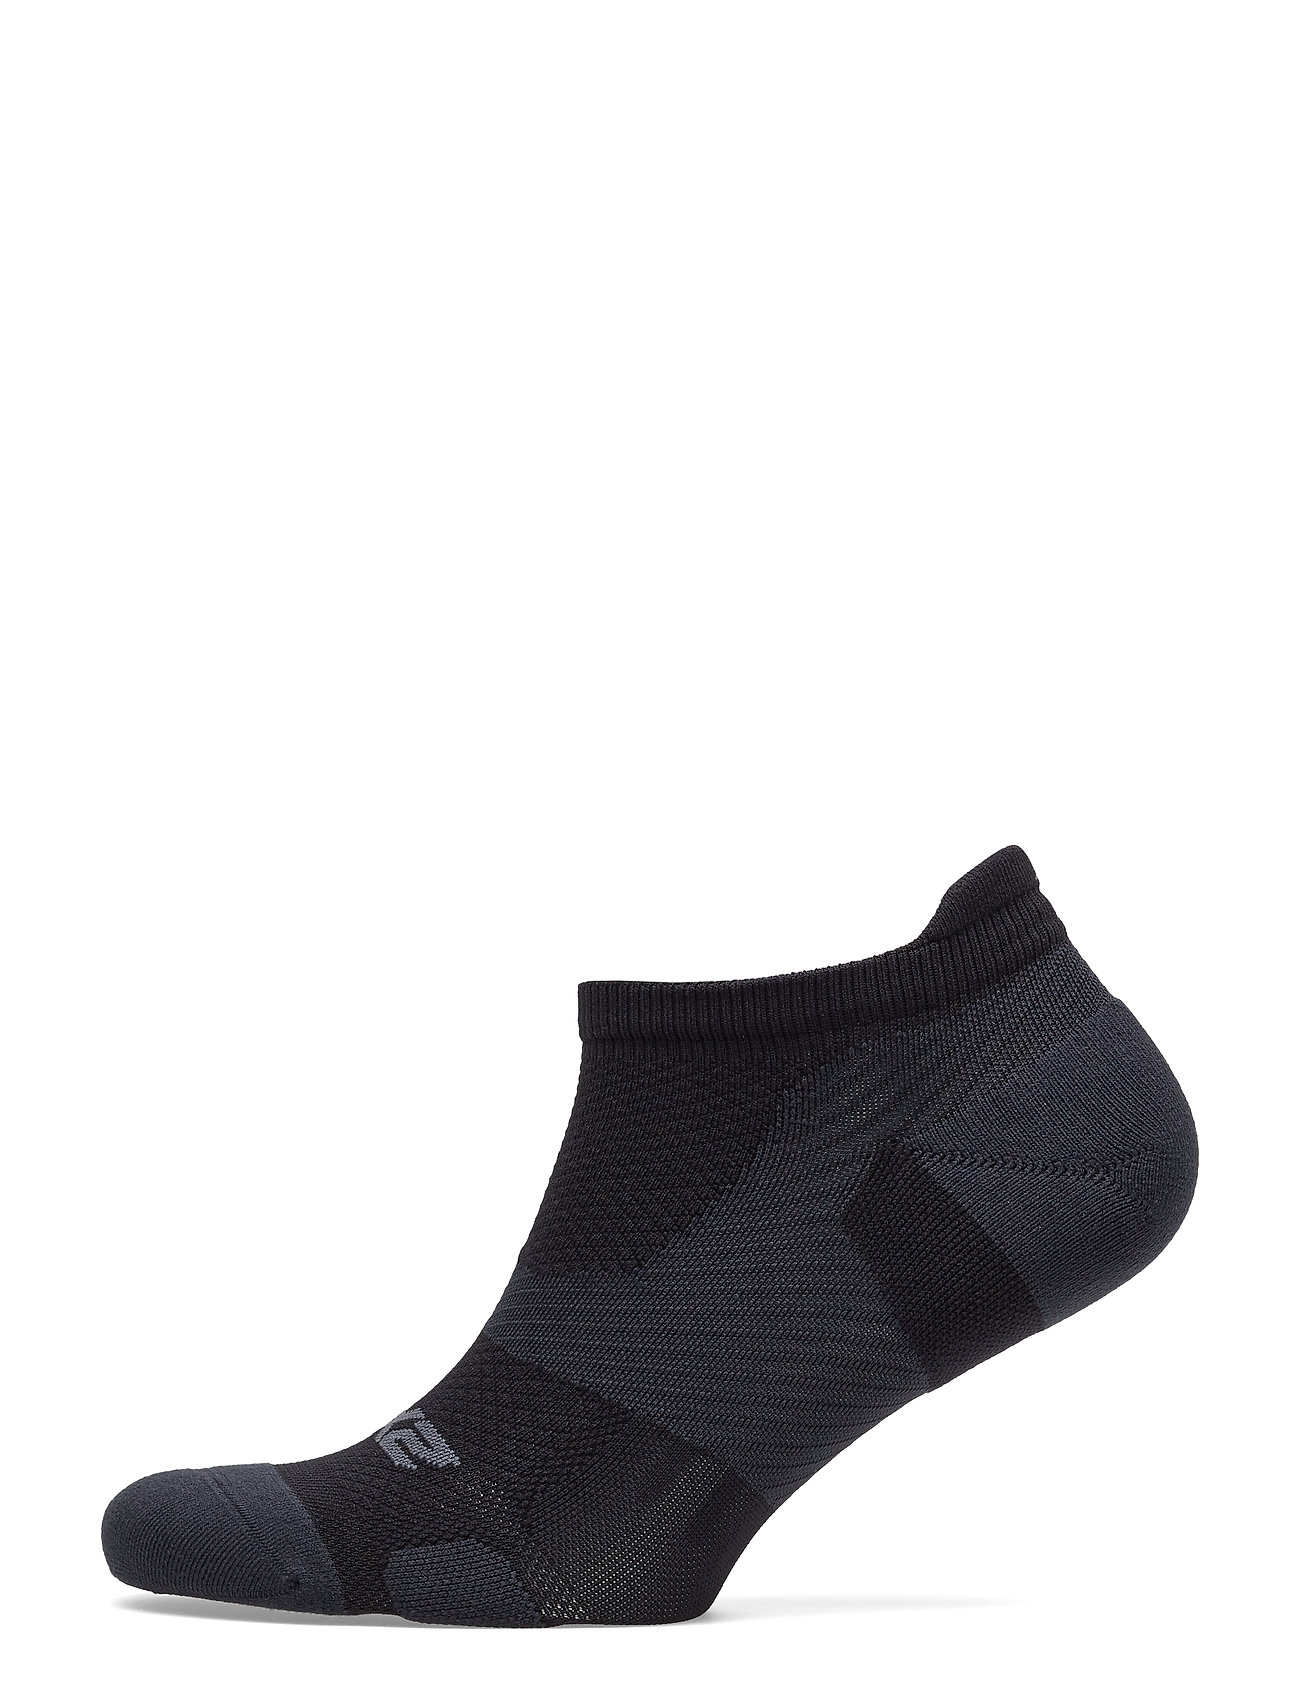 2XU Vectr LightCushion NoShow Sock-U - BLACK/TITANIUM